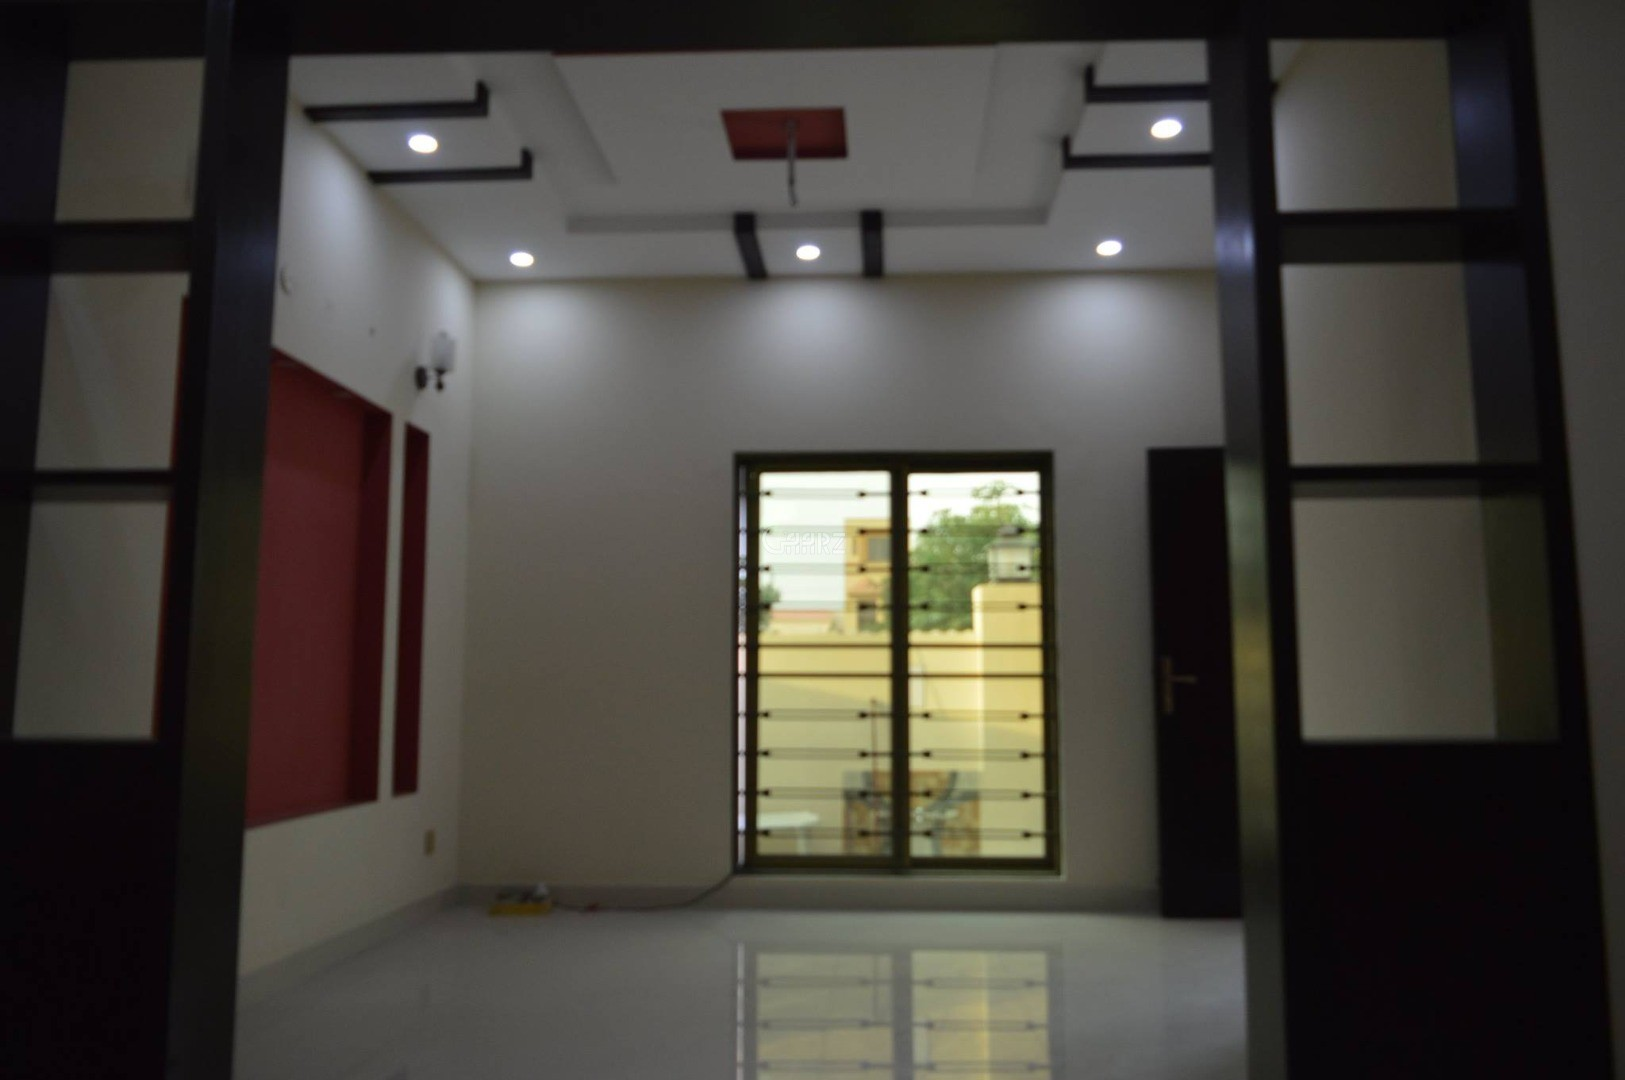 10 Marla Lower Portion for Rent in Gulistan-e-jauhar Block-7